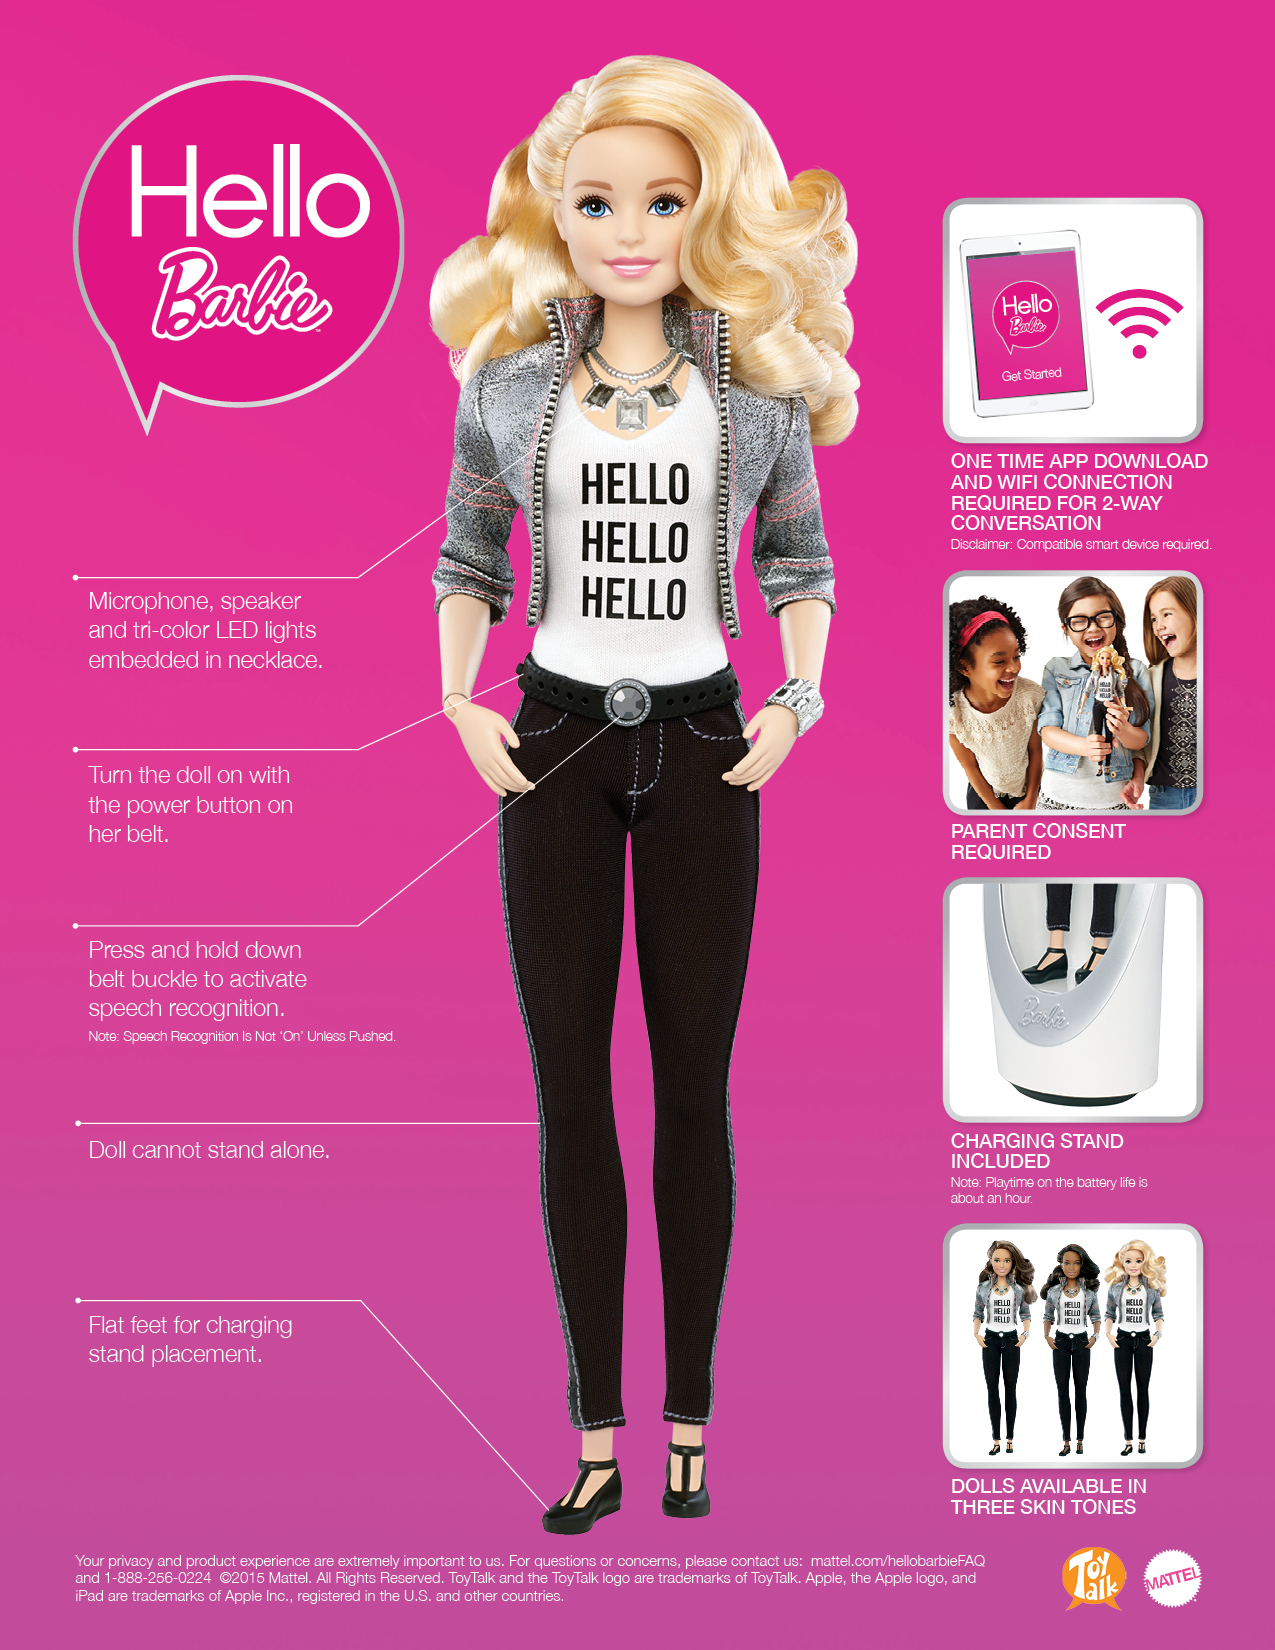 hello-barbie-infographic-technology